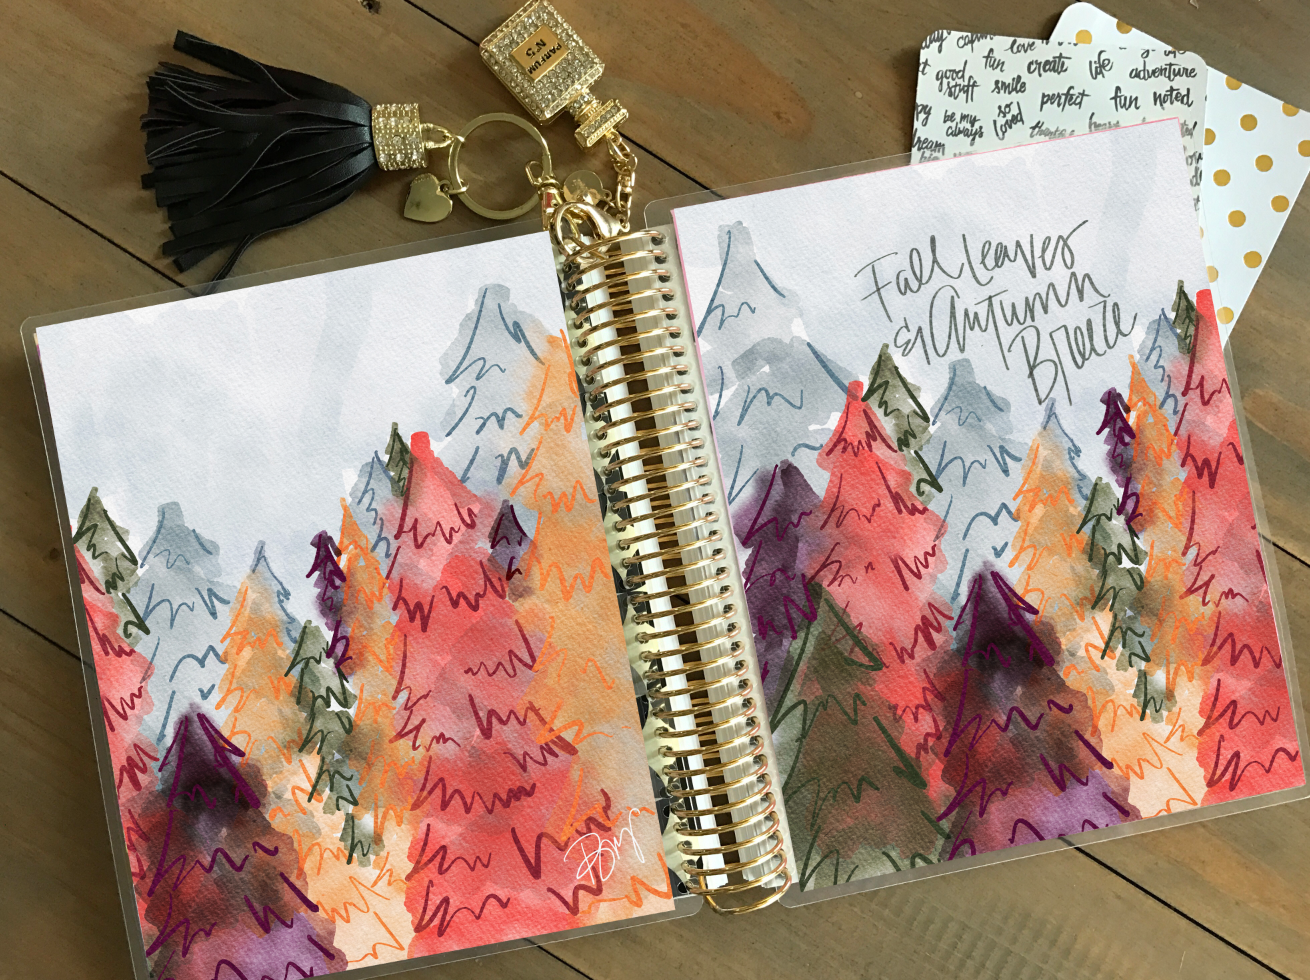 Stylish Planner and Stylish Gifts - Fall Leaves Planner Cover (Hand-painted by Britt)